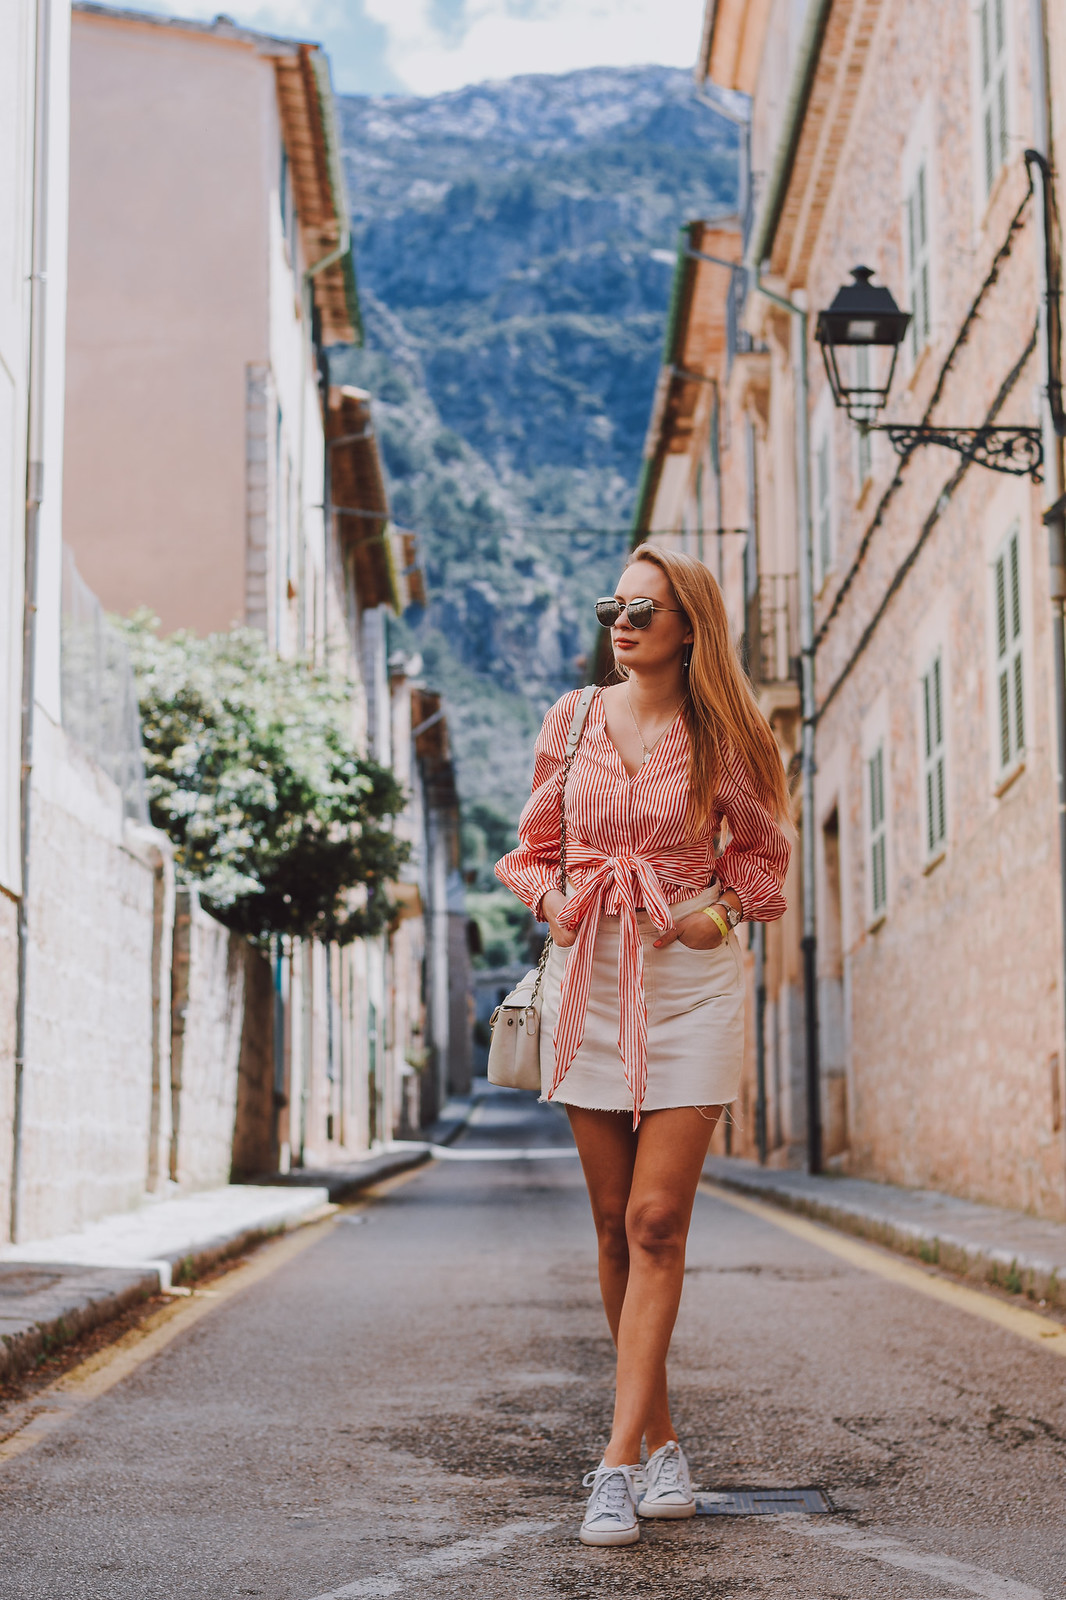 Latvian fashion and style blogger